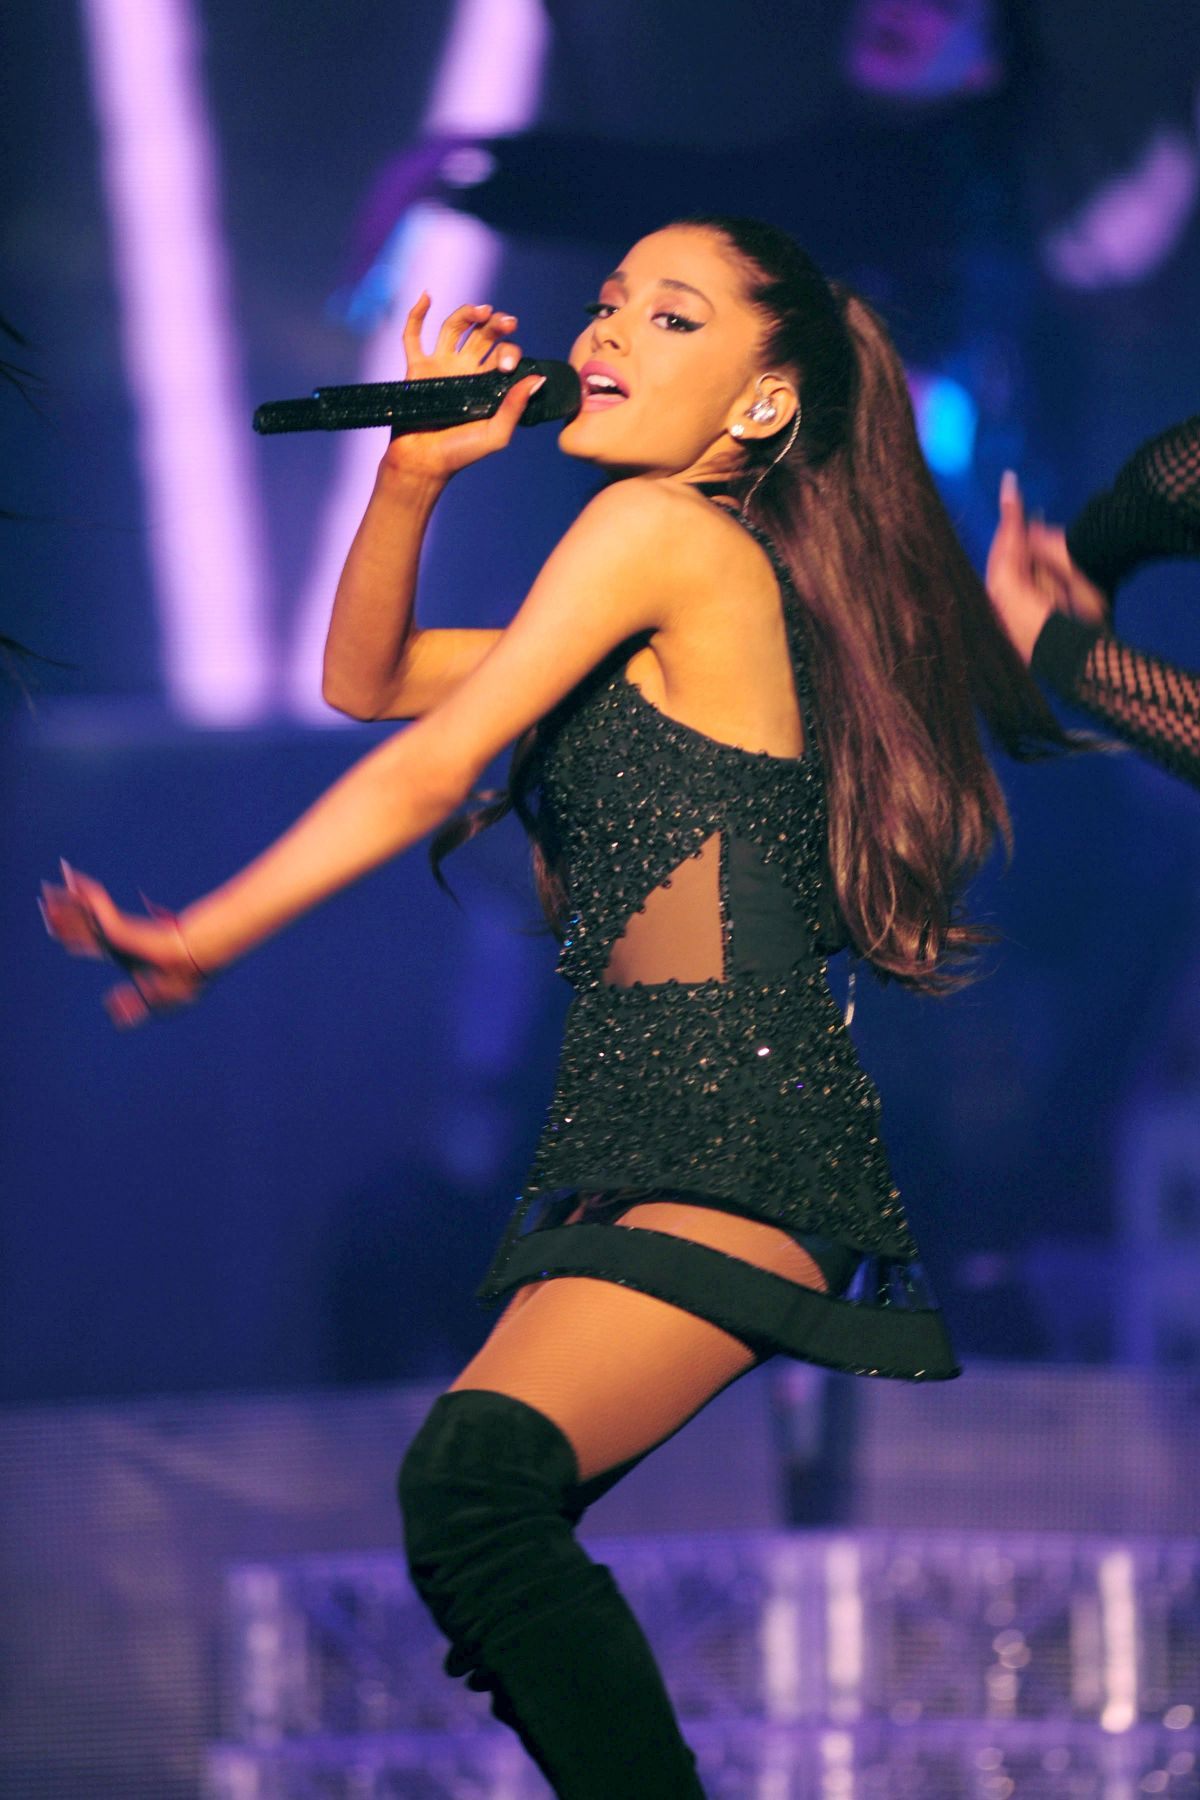 Ariana Grande Performs At Honeymoon Tour Opening Night In Kansas